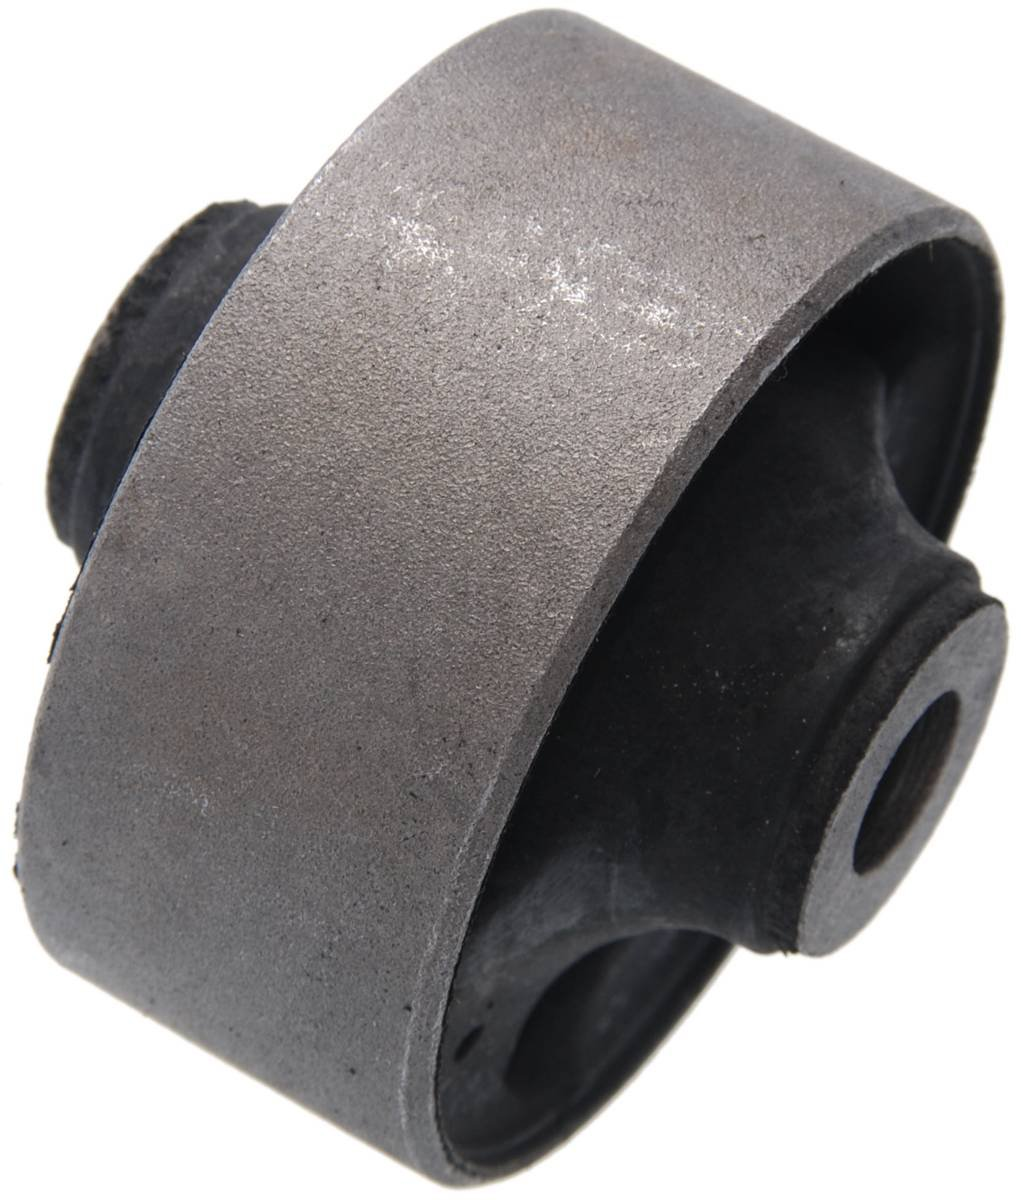 FEBEST TMB-MCL25 Differential Mount Arm Bushing by Febest